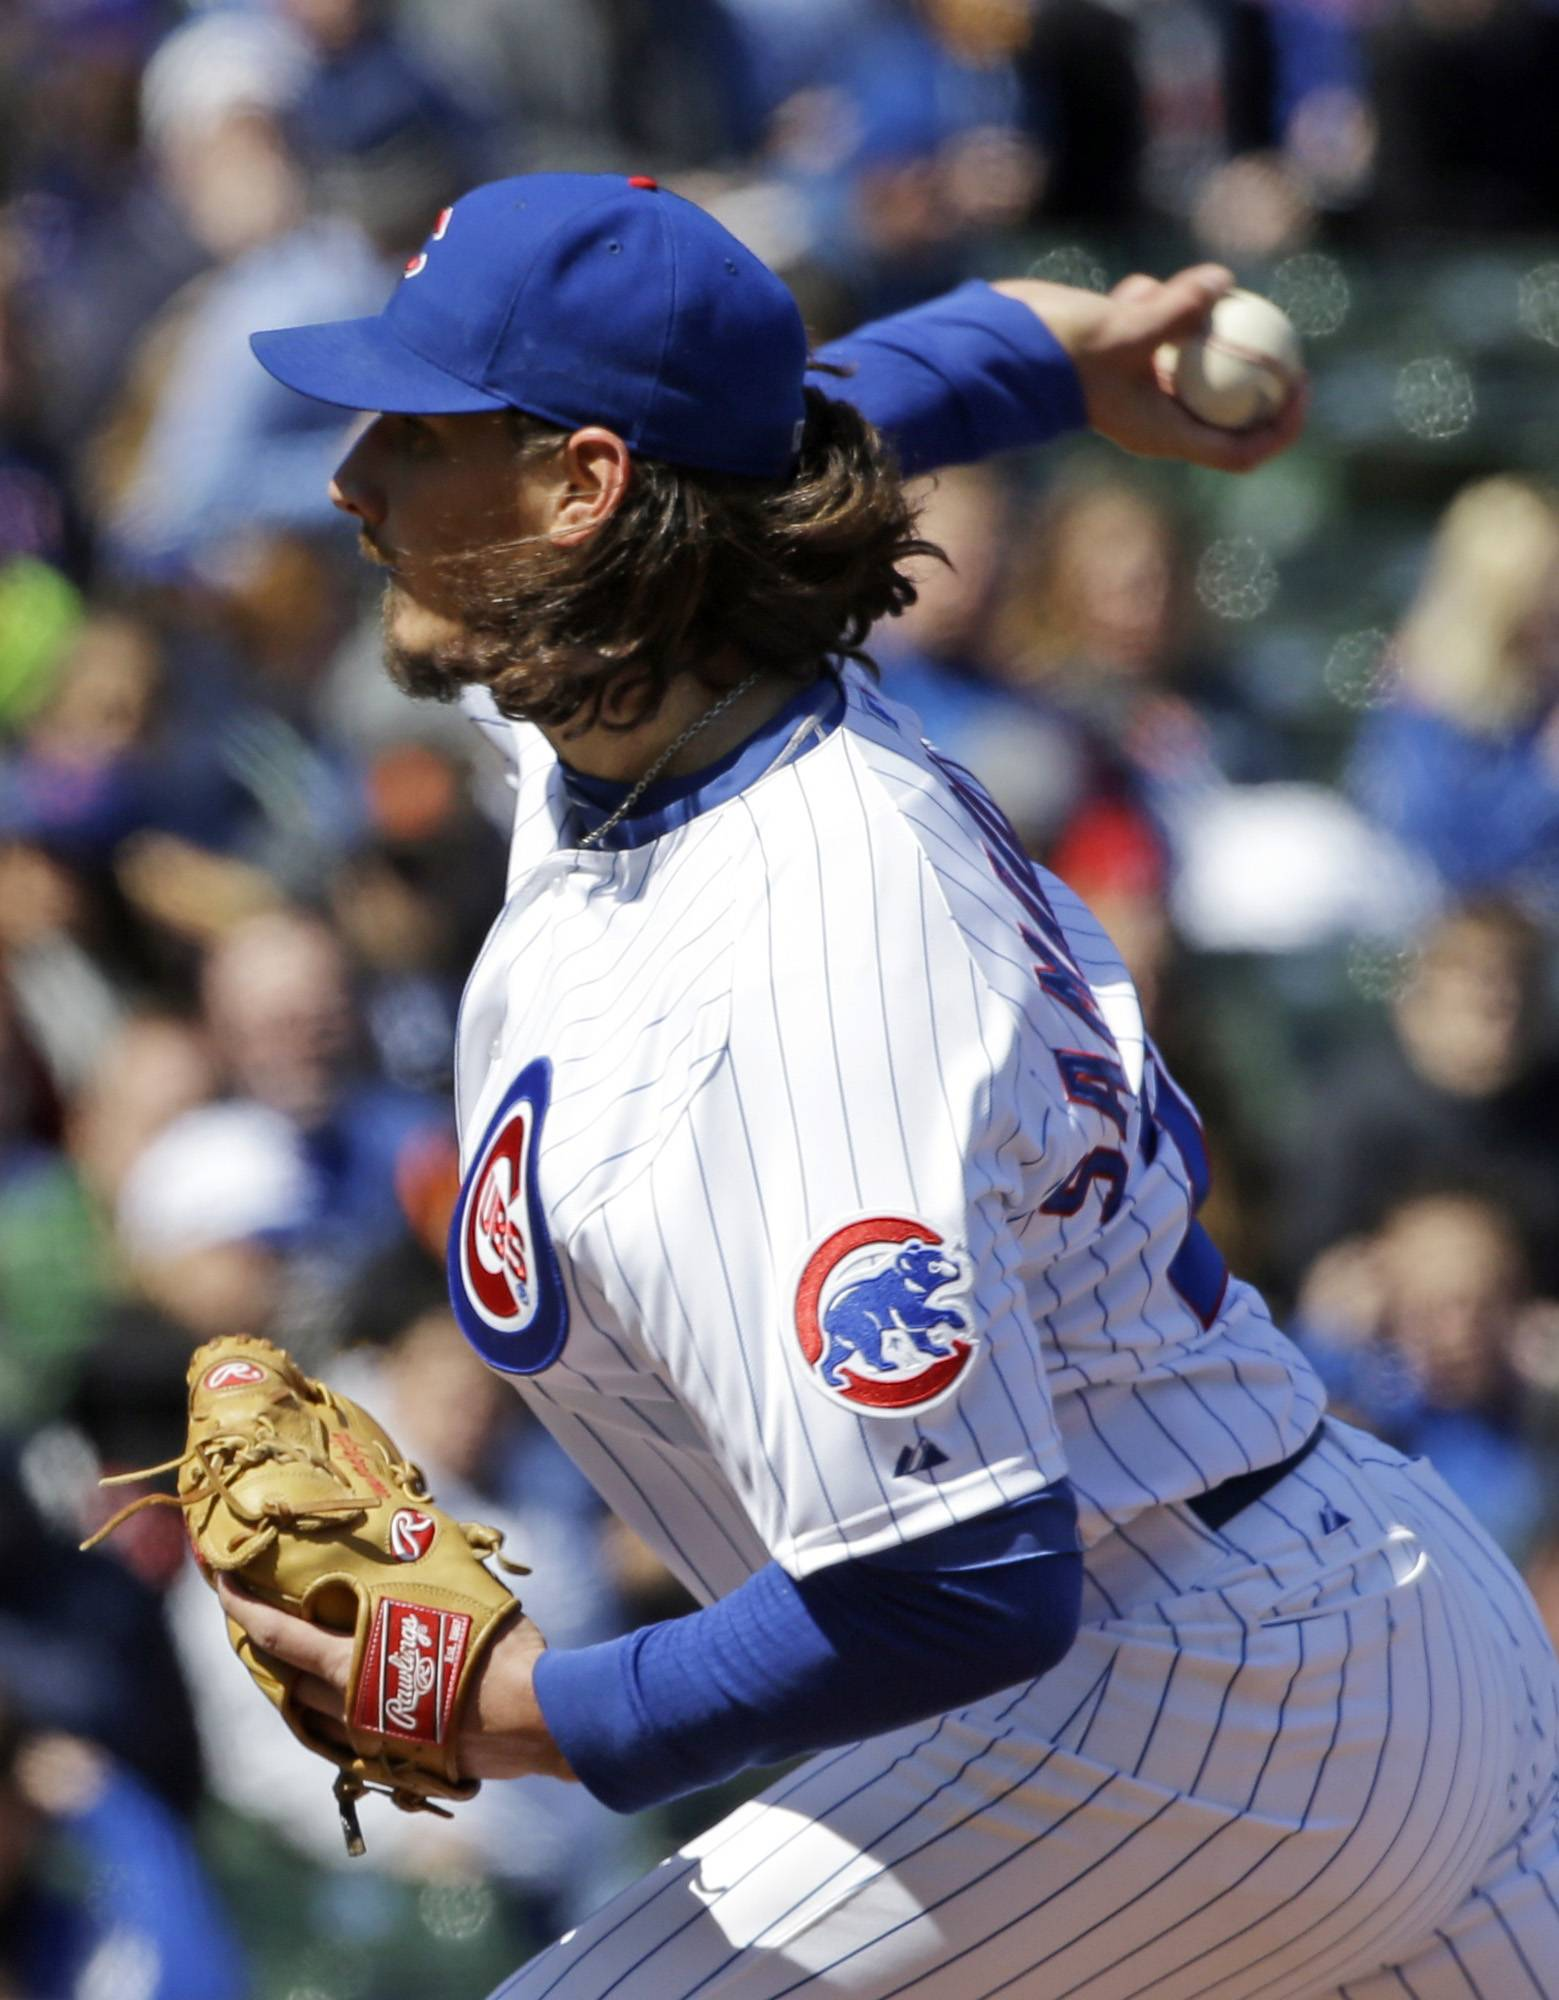 Chicago Cubs starter Jeff Samardzija throws against the Philadelphia Phillies during the first inning of a baseball game in Chicago, Saturday, April 5, 2014. (AP Photo/Nam Y. Huh)